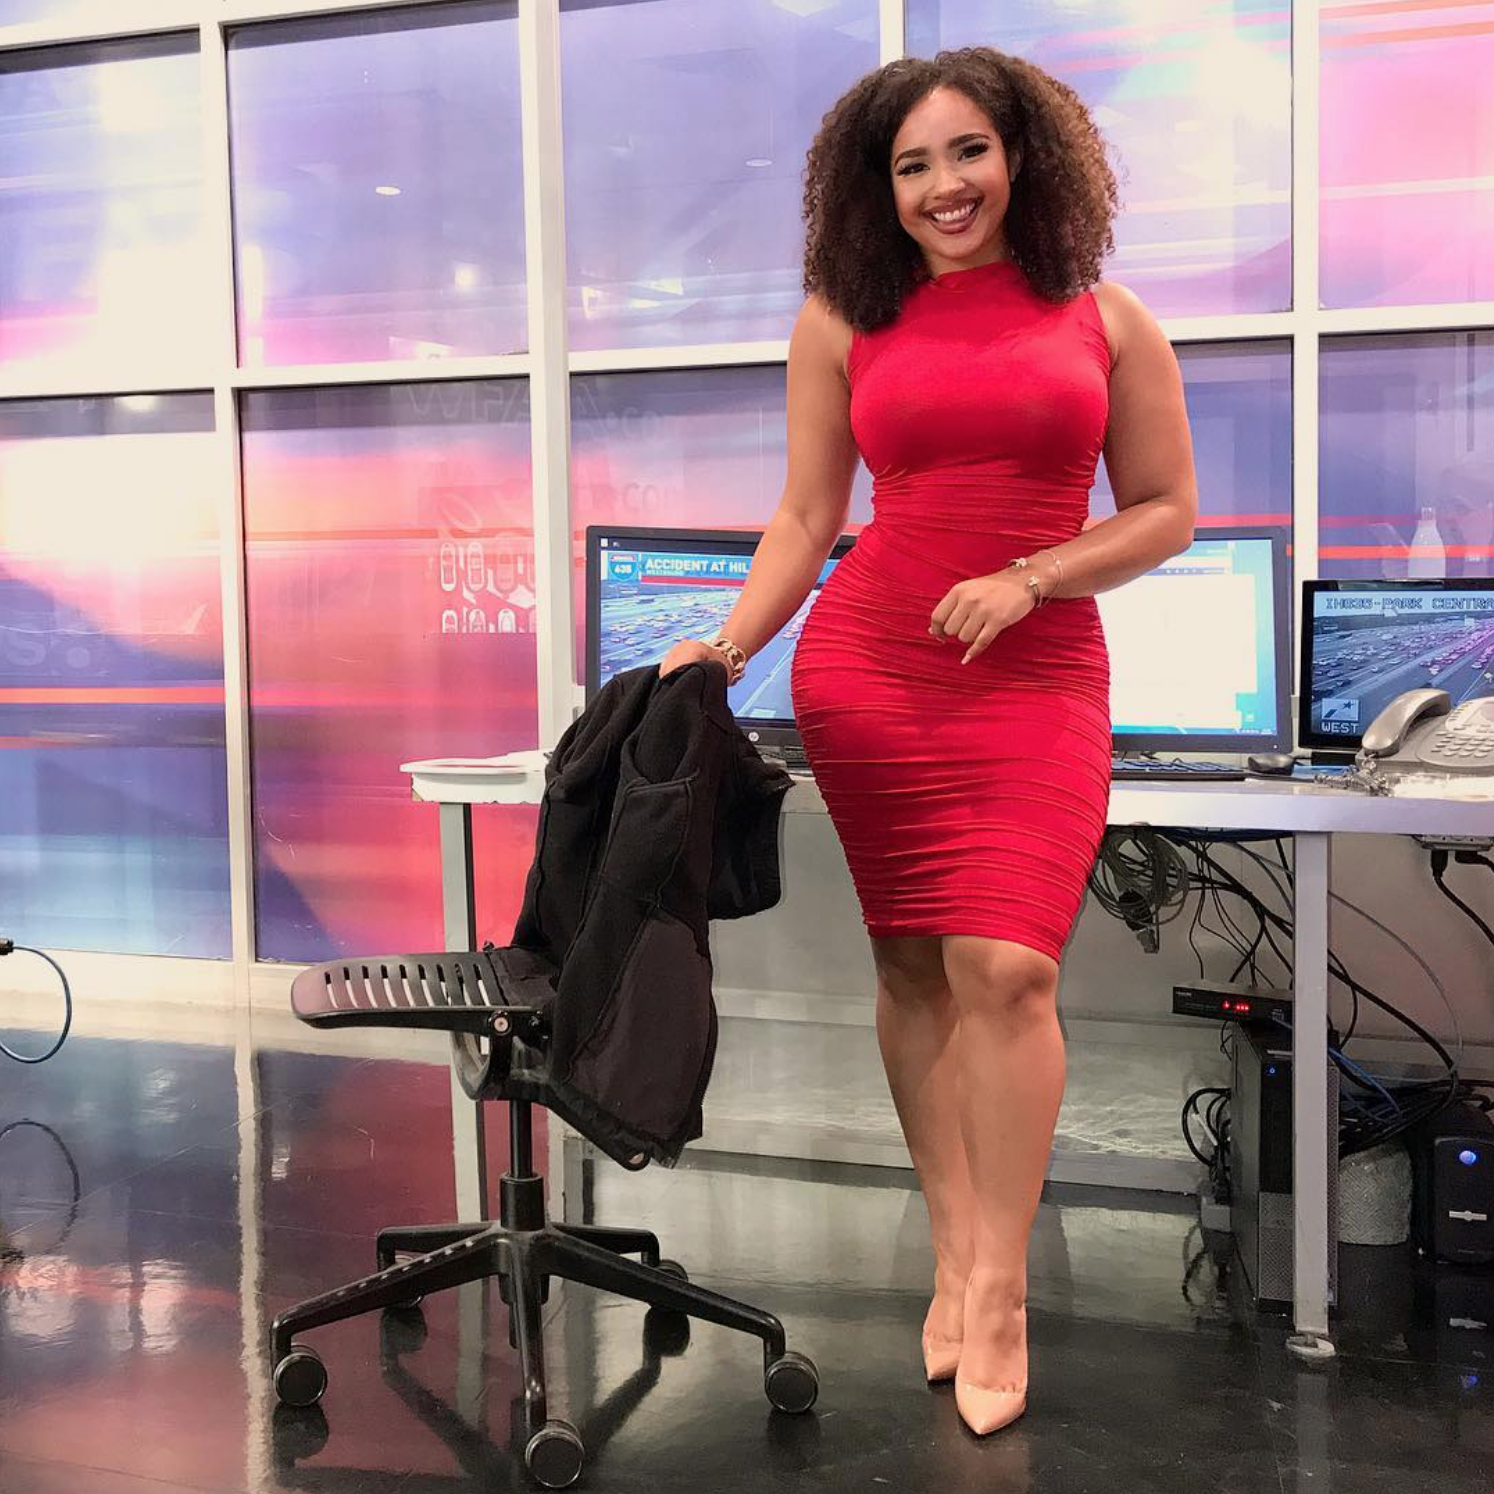 Hateration In The Dancery: People Are Defending A Dallas TV Anchor After Viewer Criticizes Her Outifts